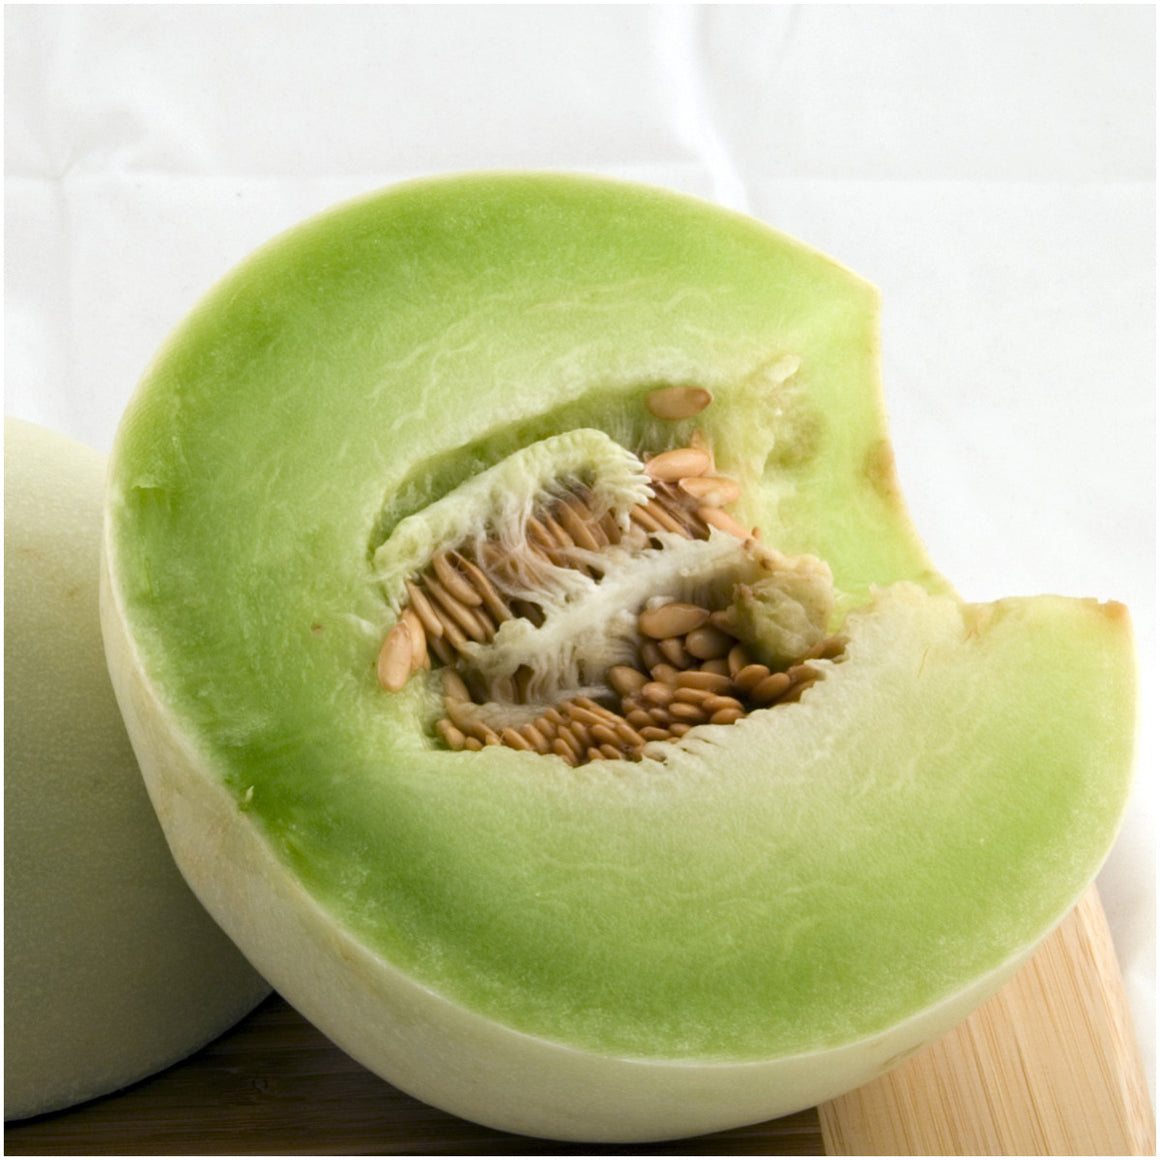 green honeydew melon